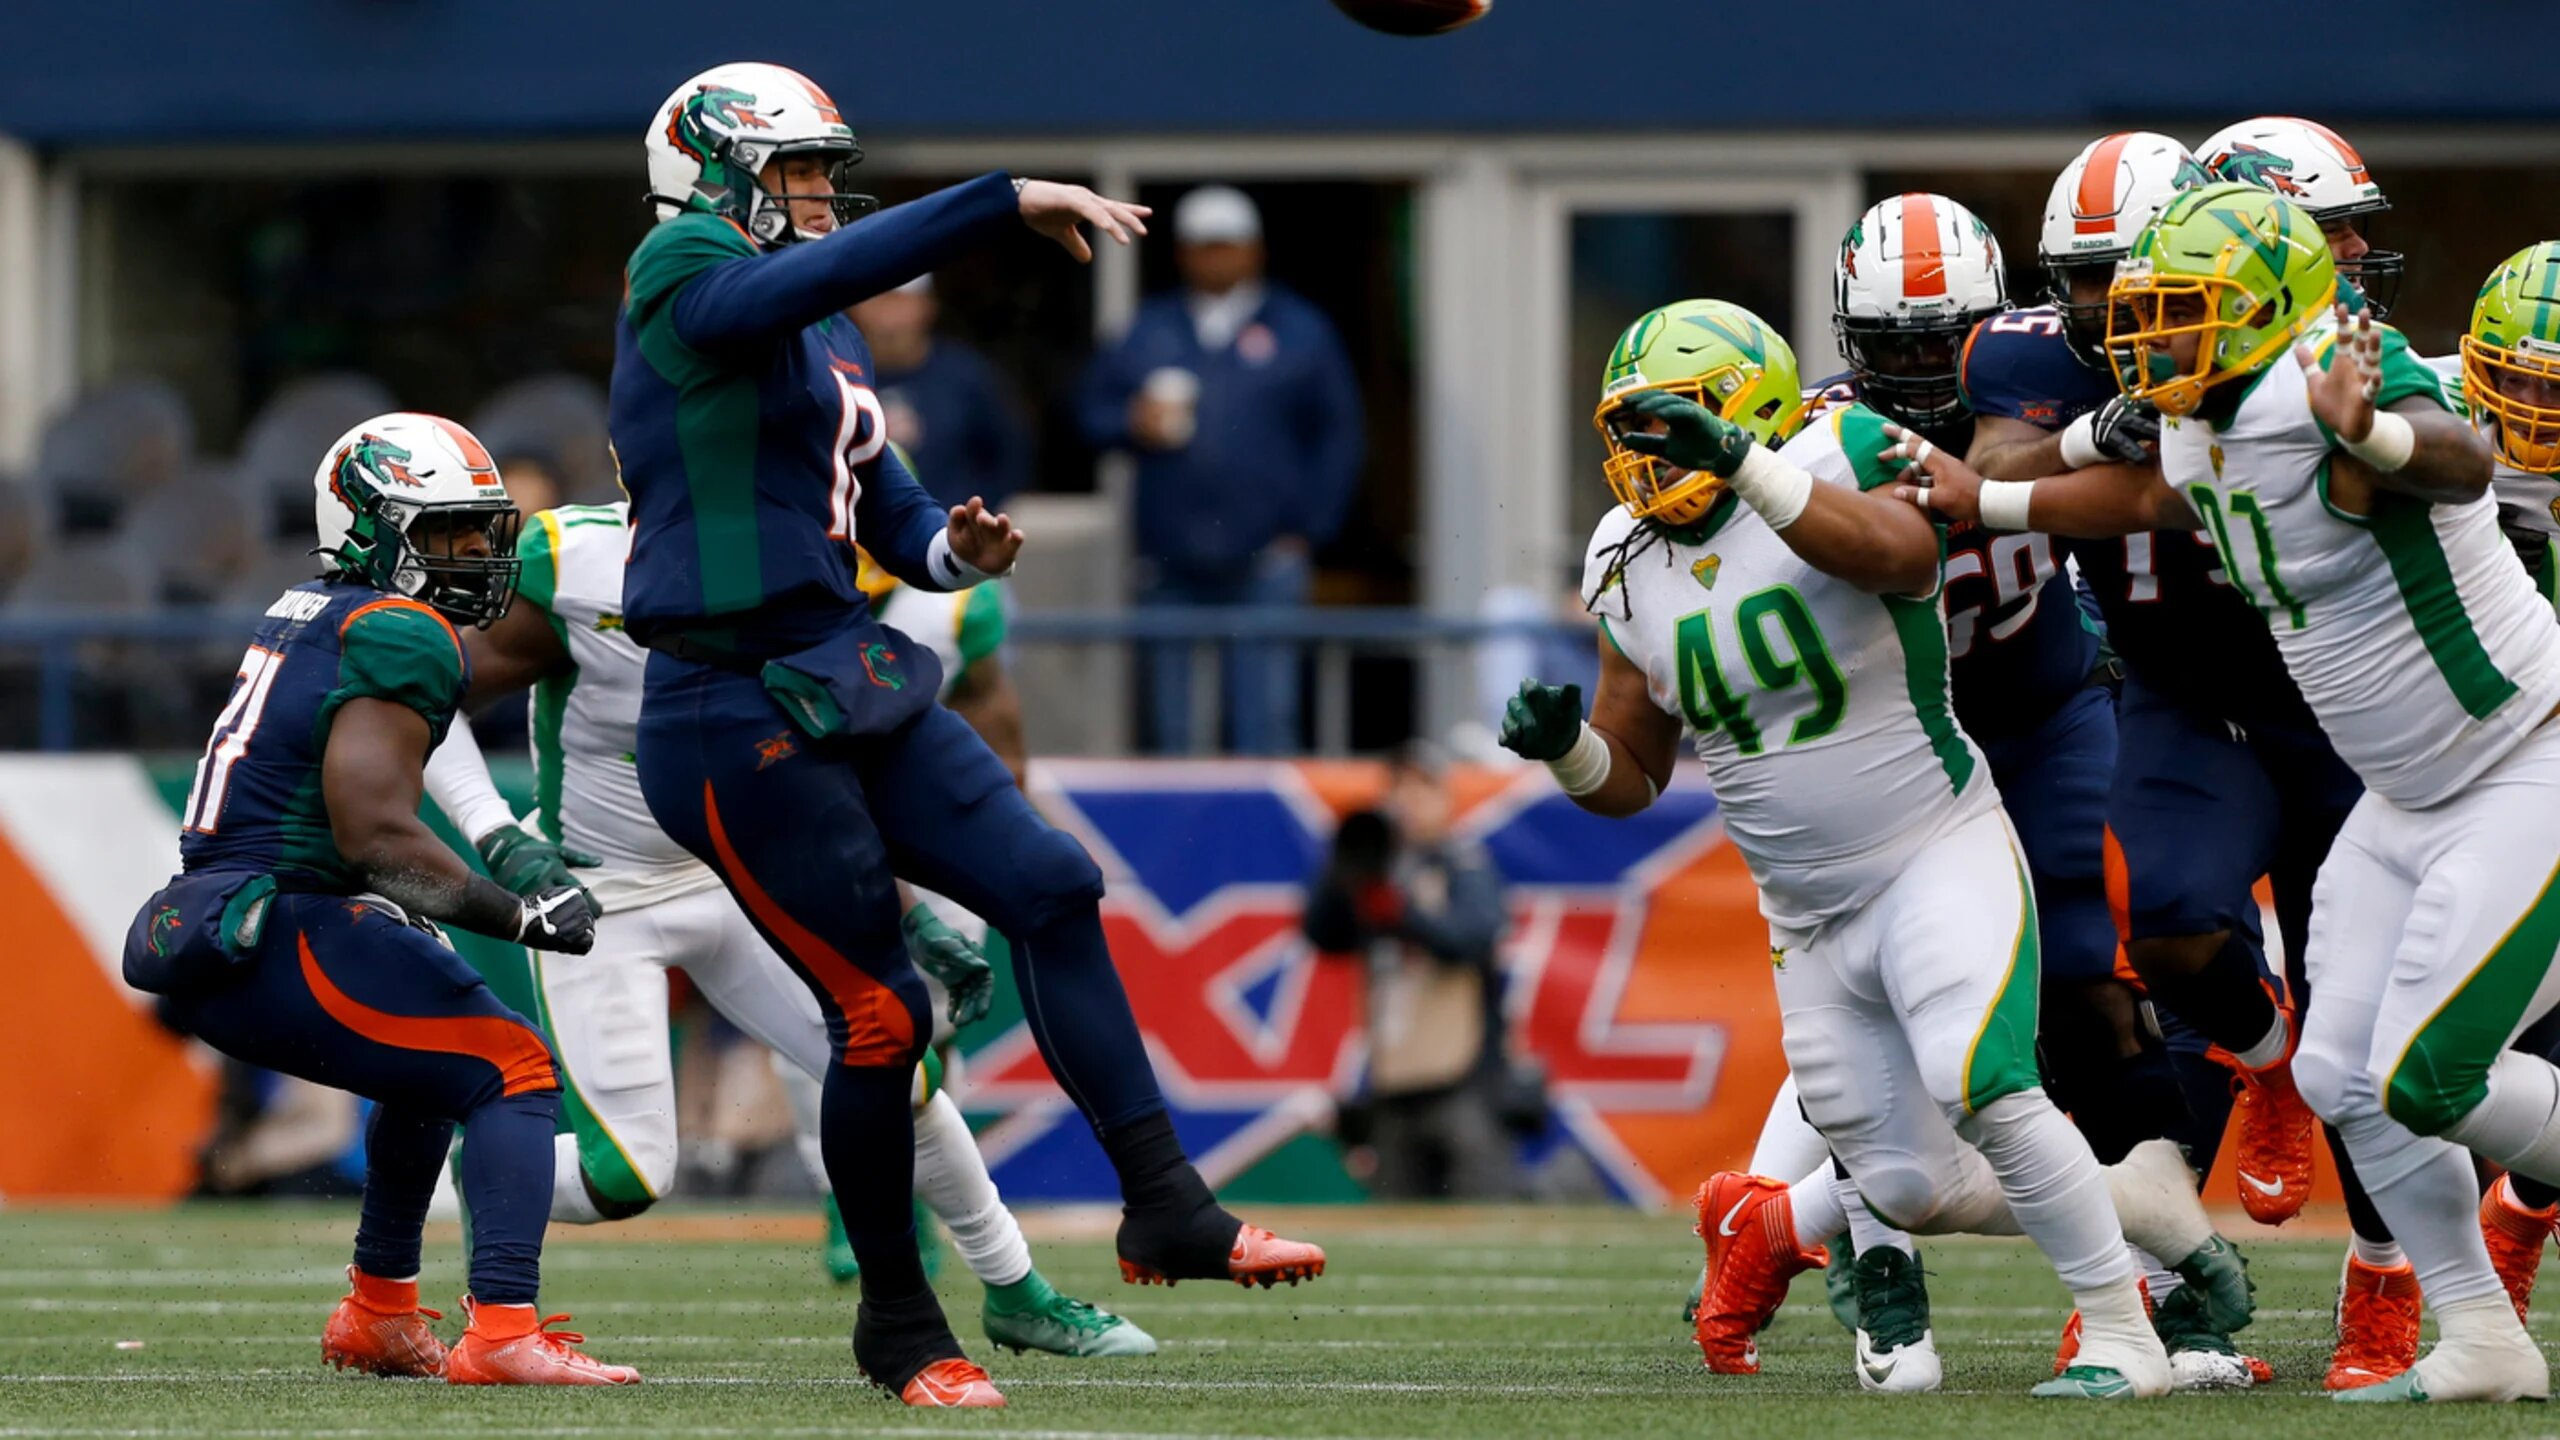 Seattle Dragons quarterback Brandon Silvers attempts a pass against the Tampa Bay Vipers